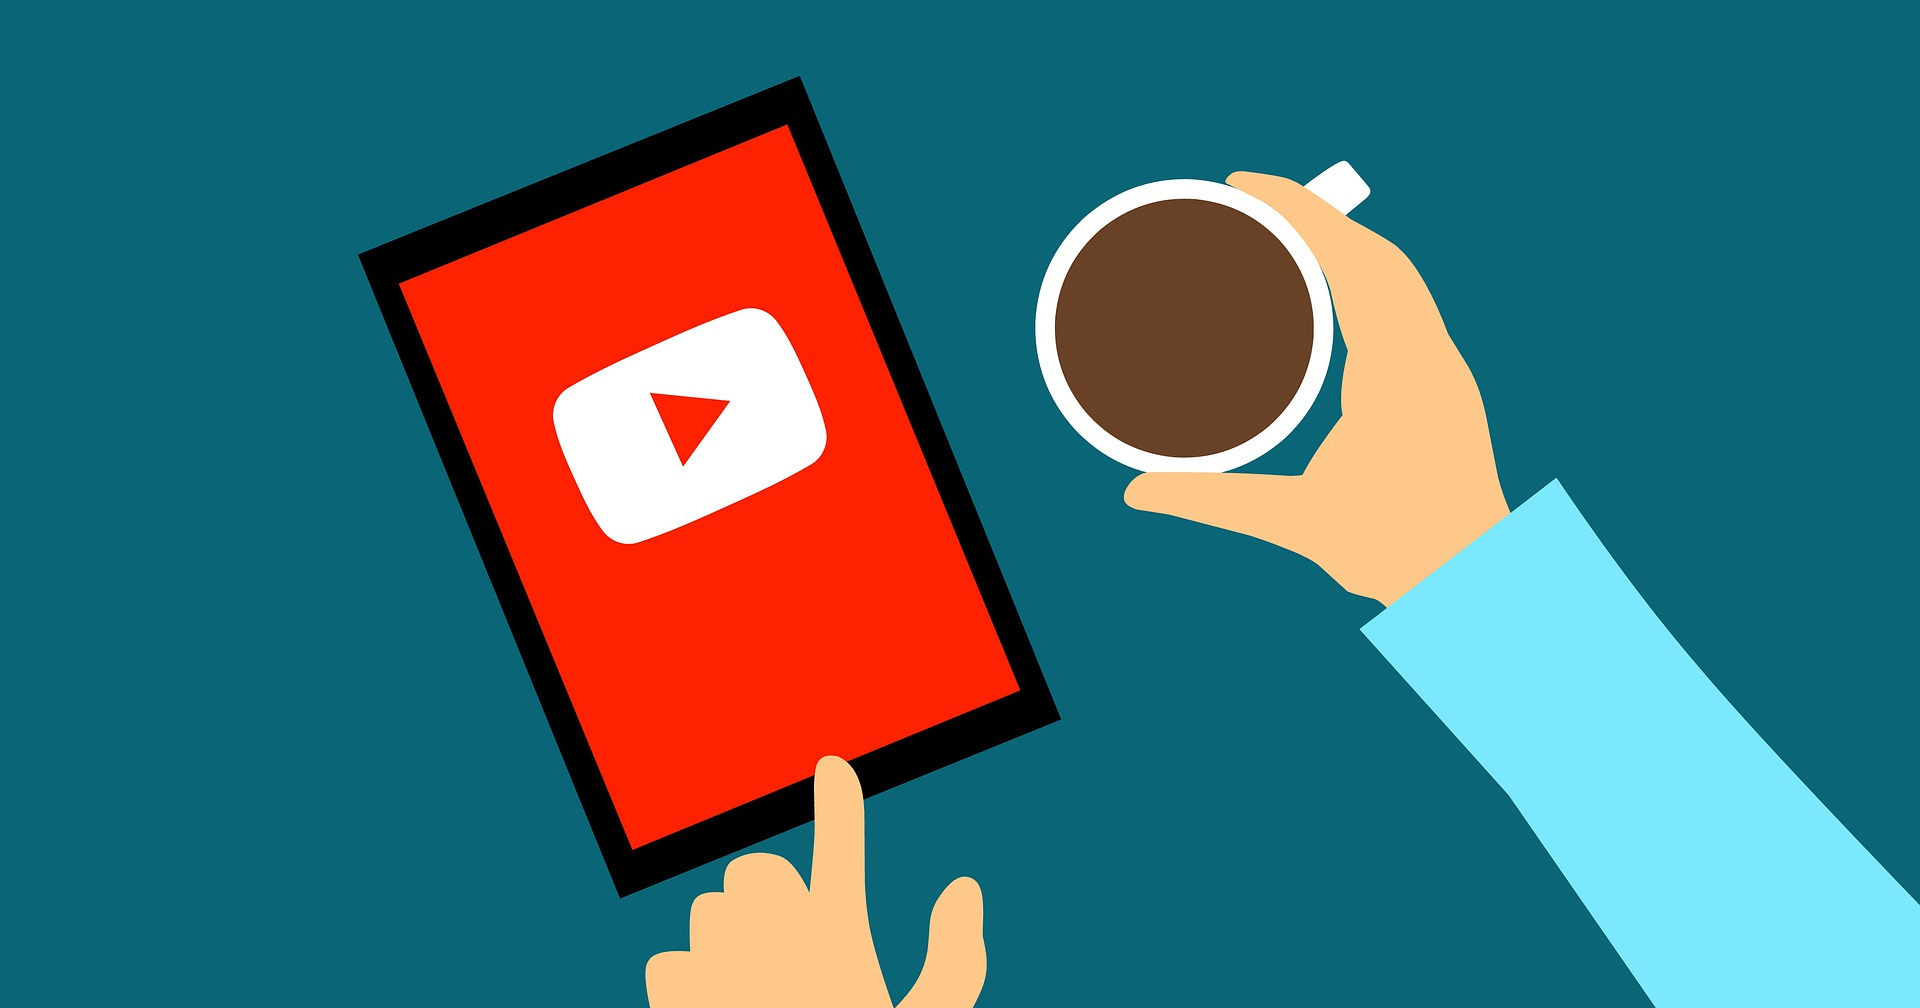 Video content and coffee